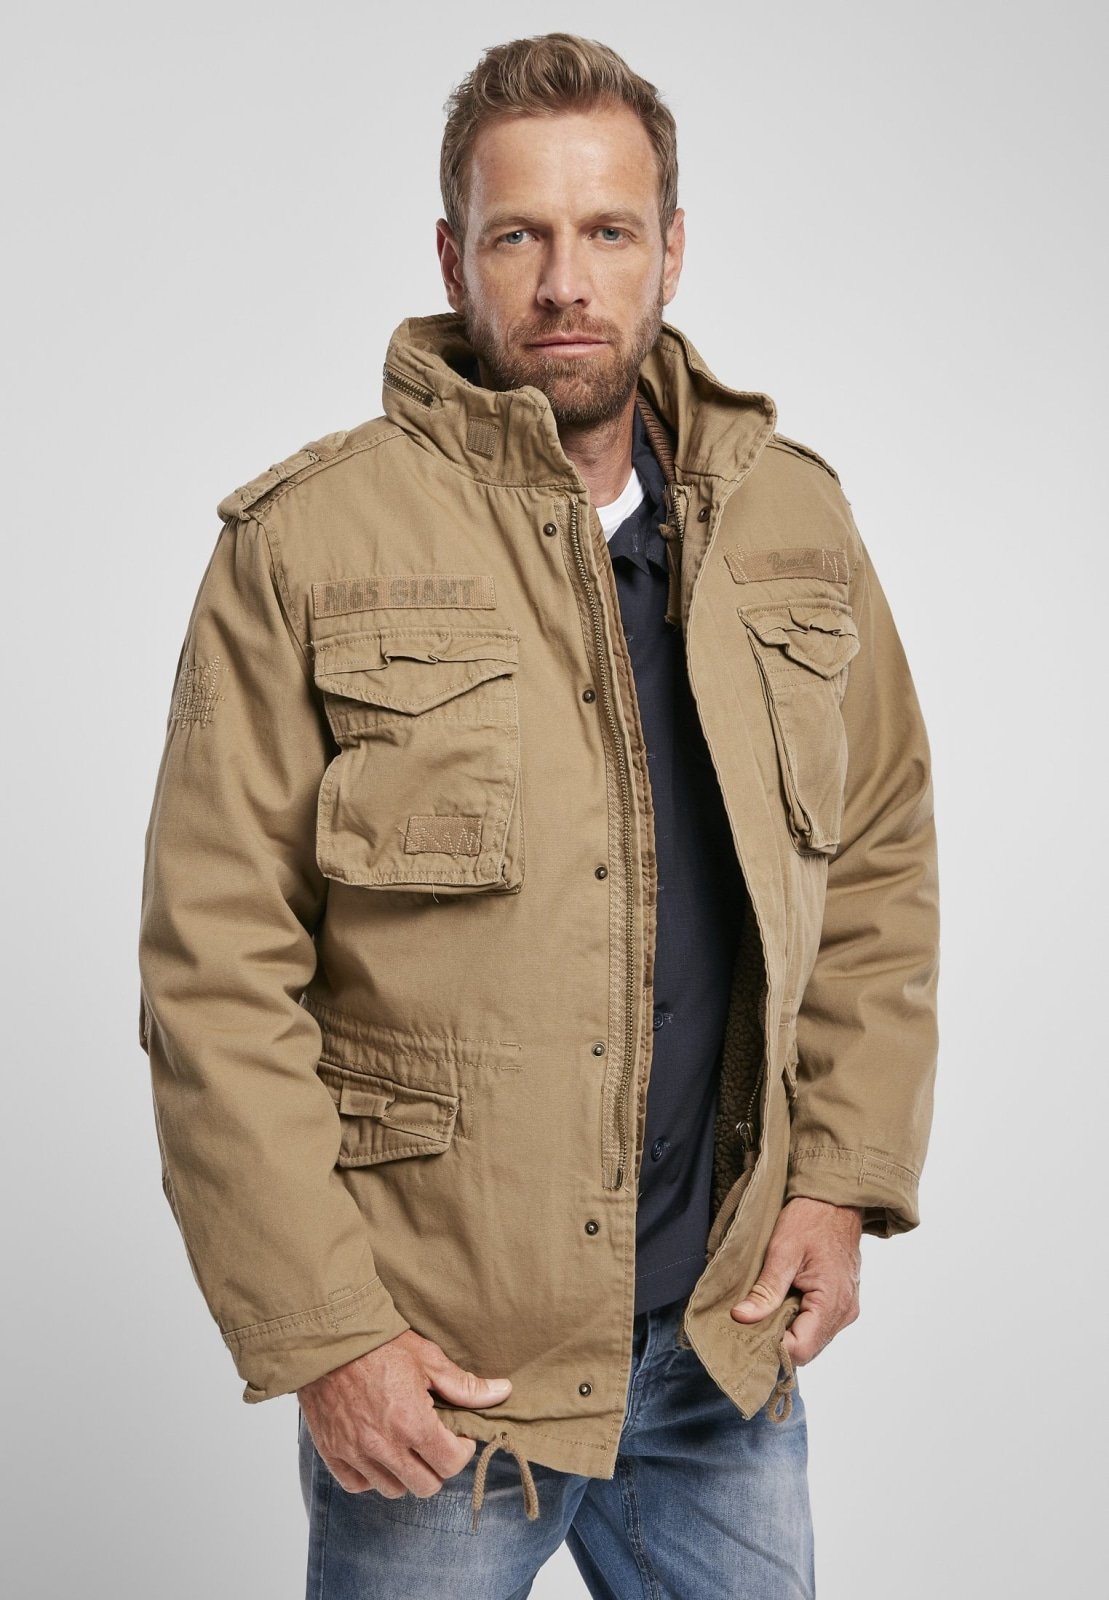 M-65 Giant (9 Colors) Camel / s Jacket Brandit